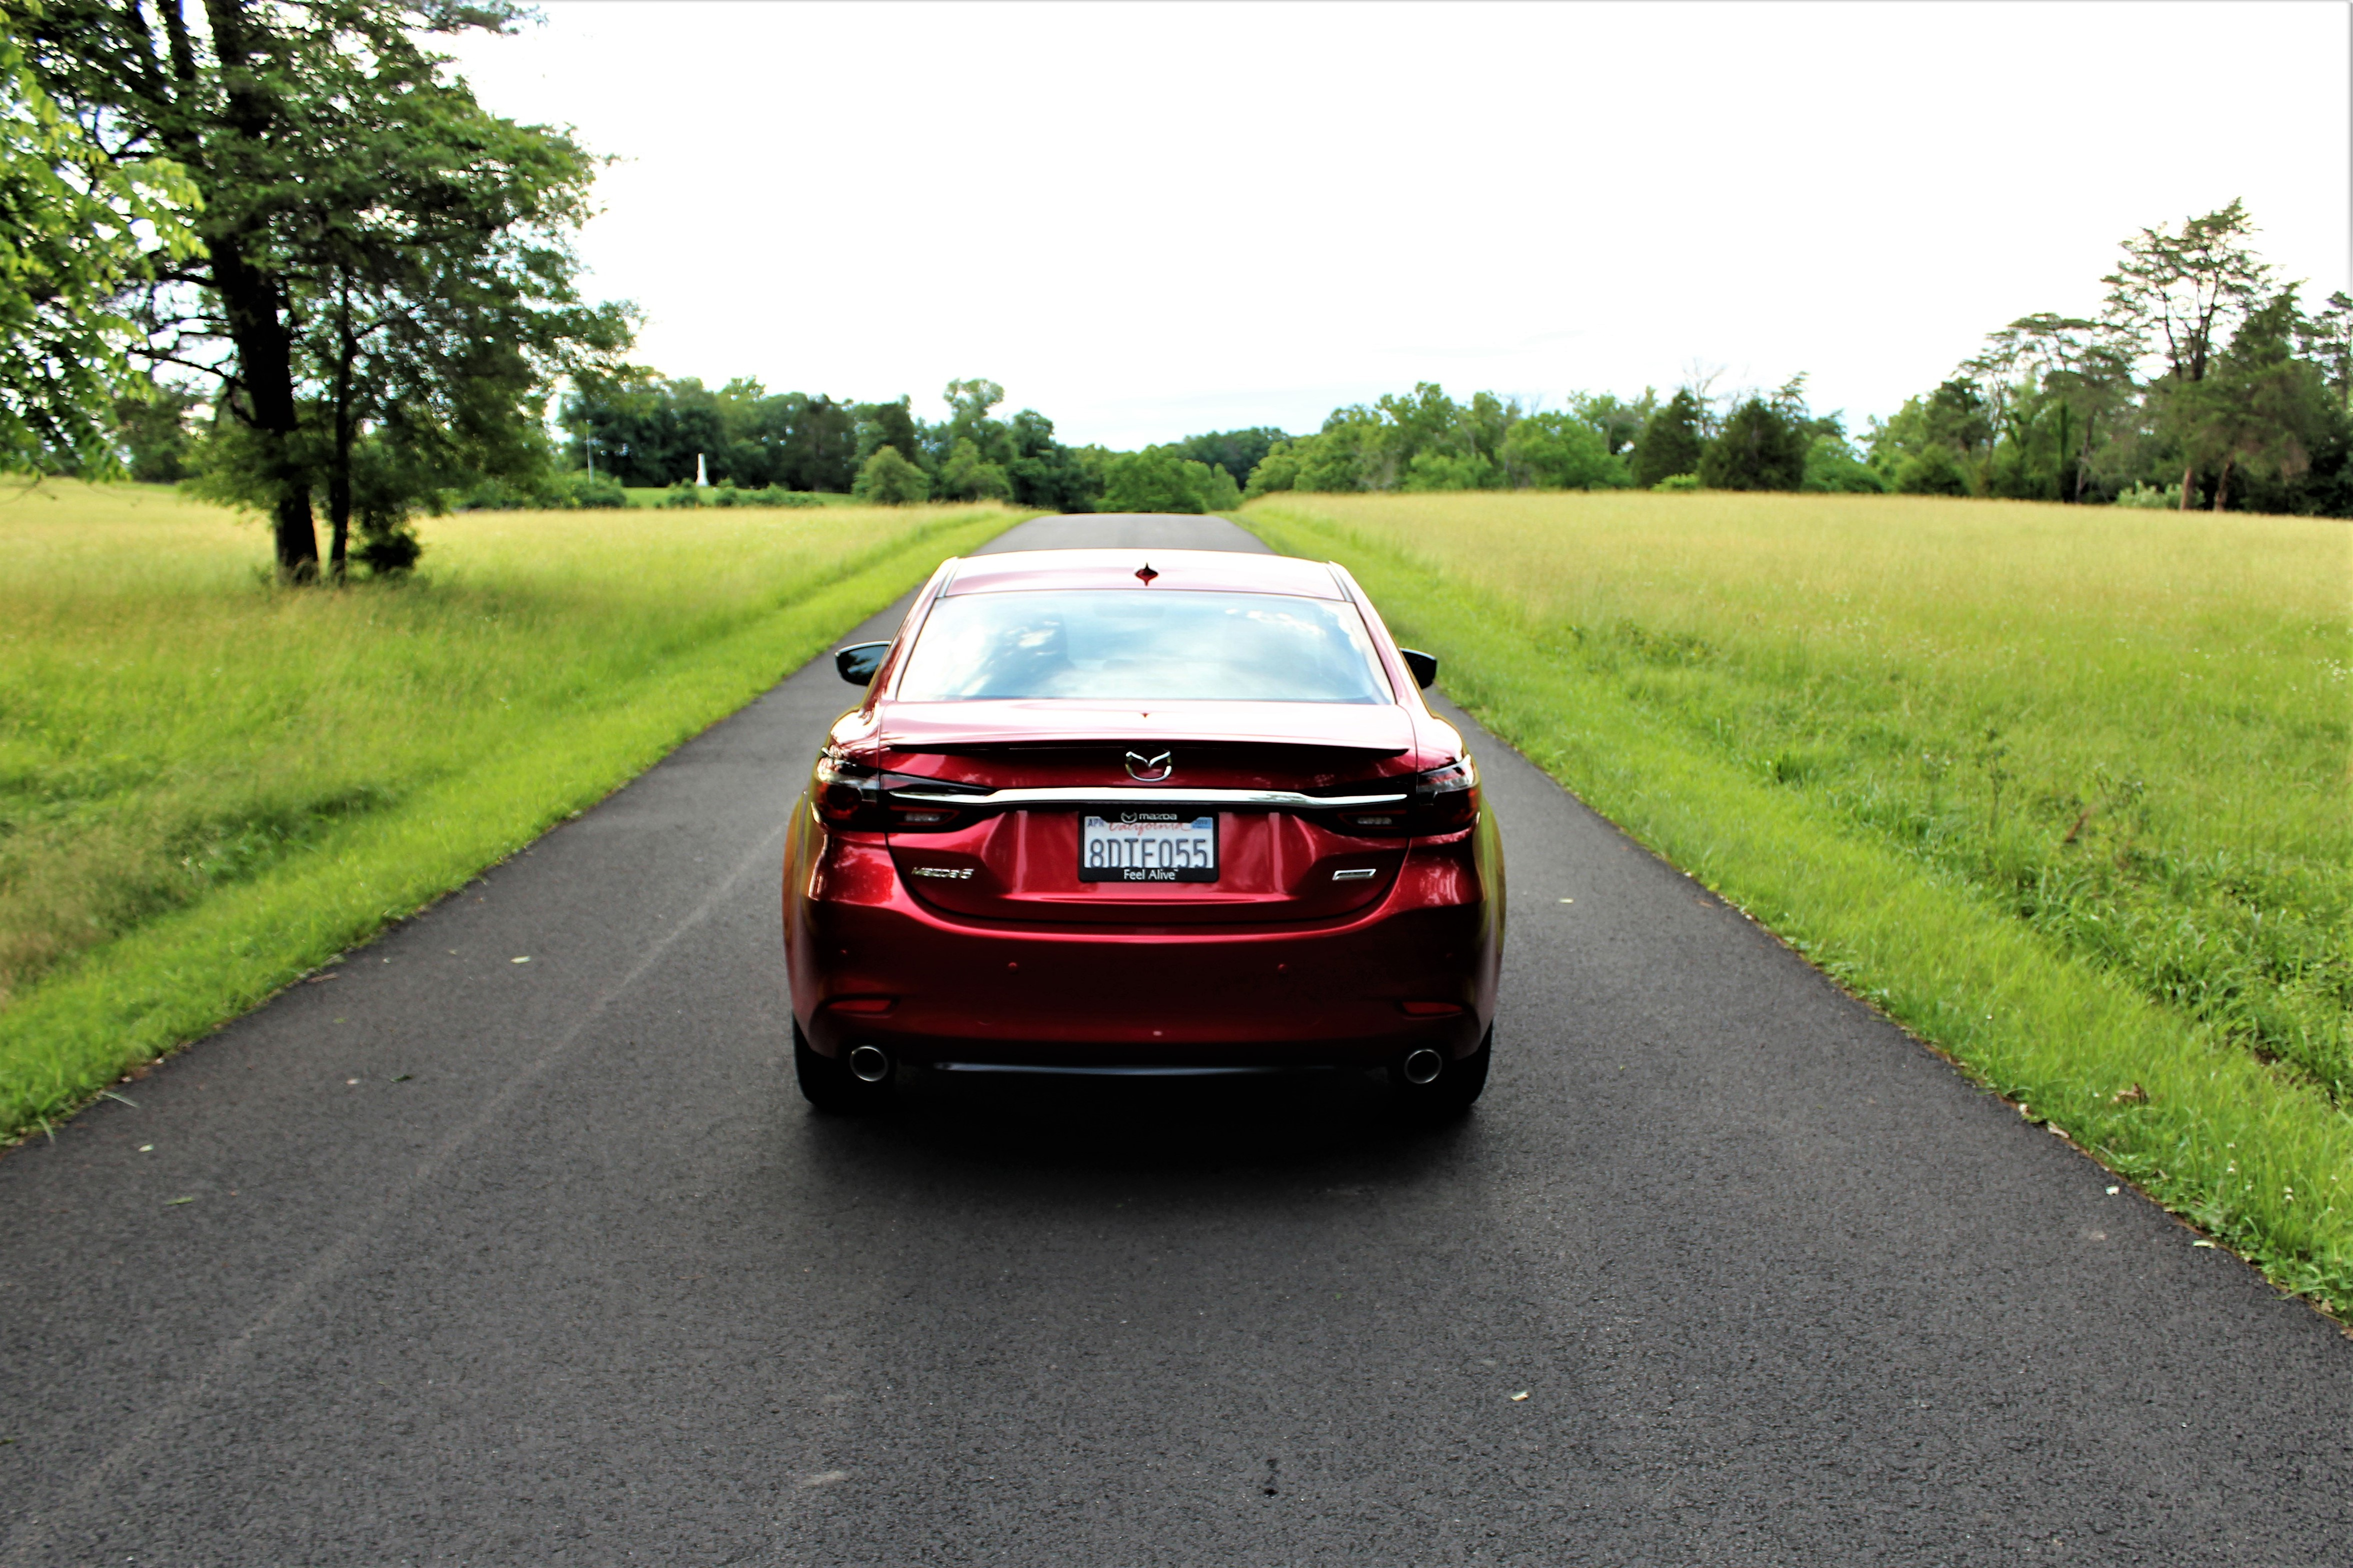 Mazda-6-Rear-Colonial-Roads